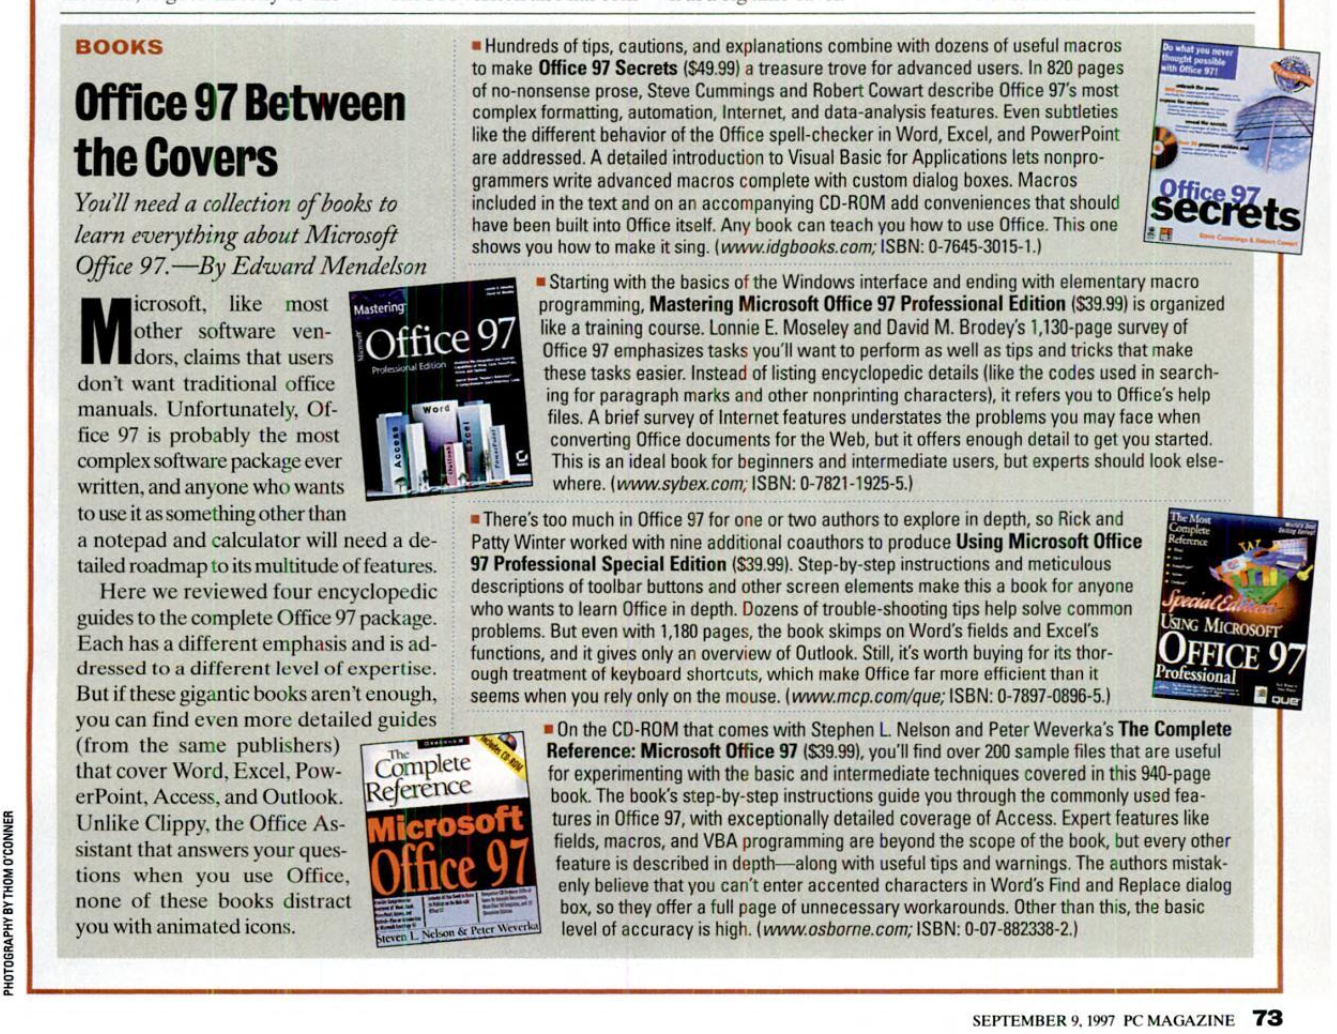 Screen shot of PC Magazine article showing four different books on how to learn Office 97.